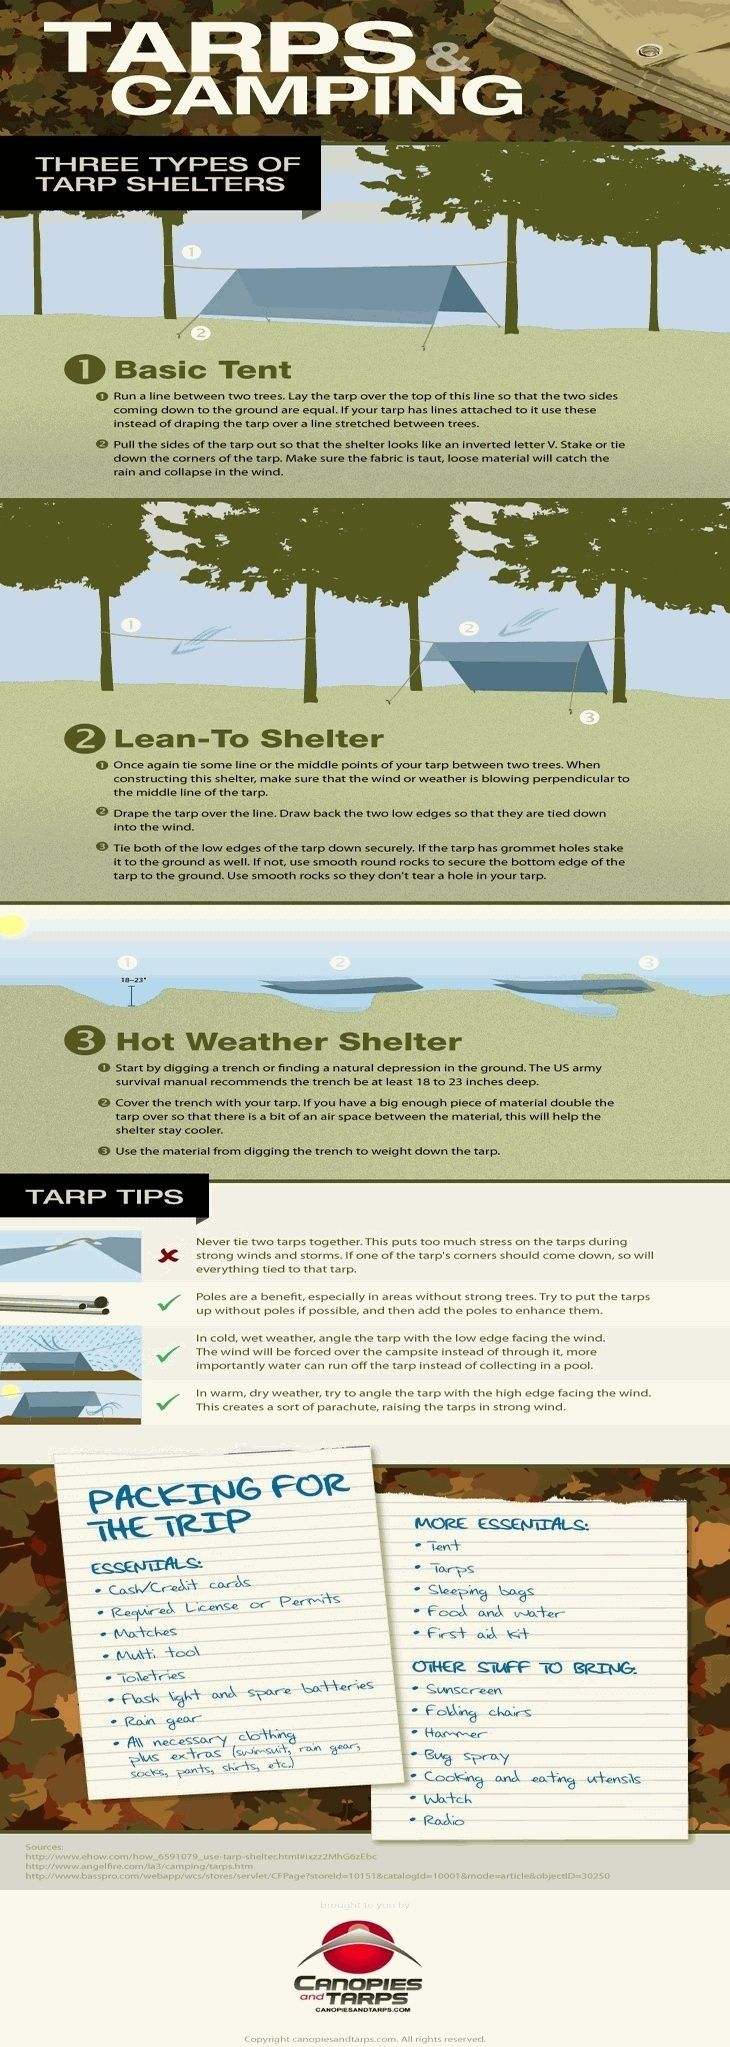 Disaster Preparedness - Camping In The Rain   Rain Gear Checklist and DIY Shelter by Survival Life http://survivallife.com/2014/06/10/disaster-preparedness-camping-in-the-rain/